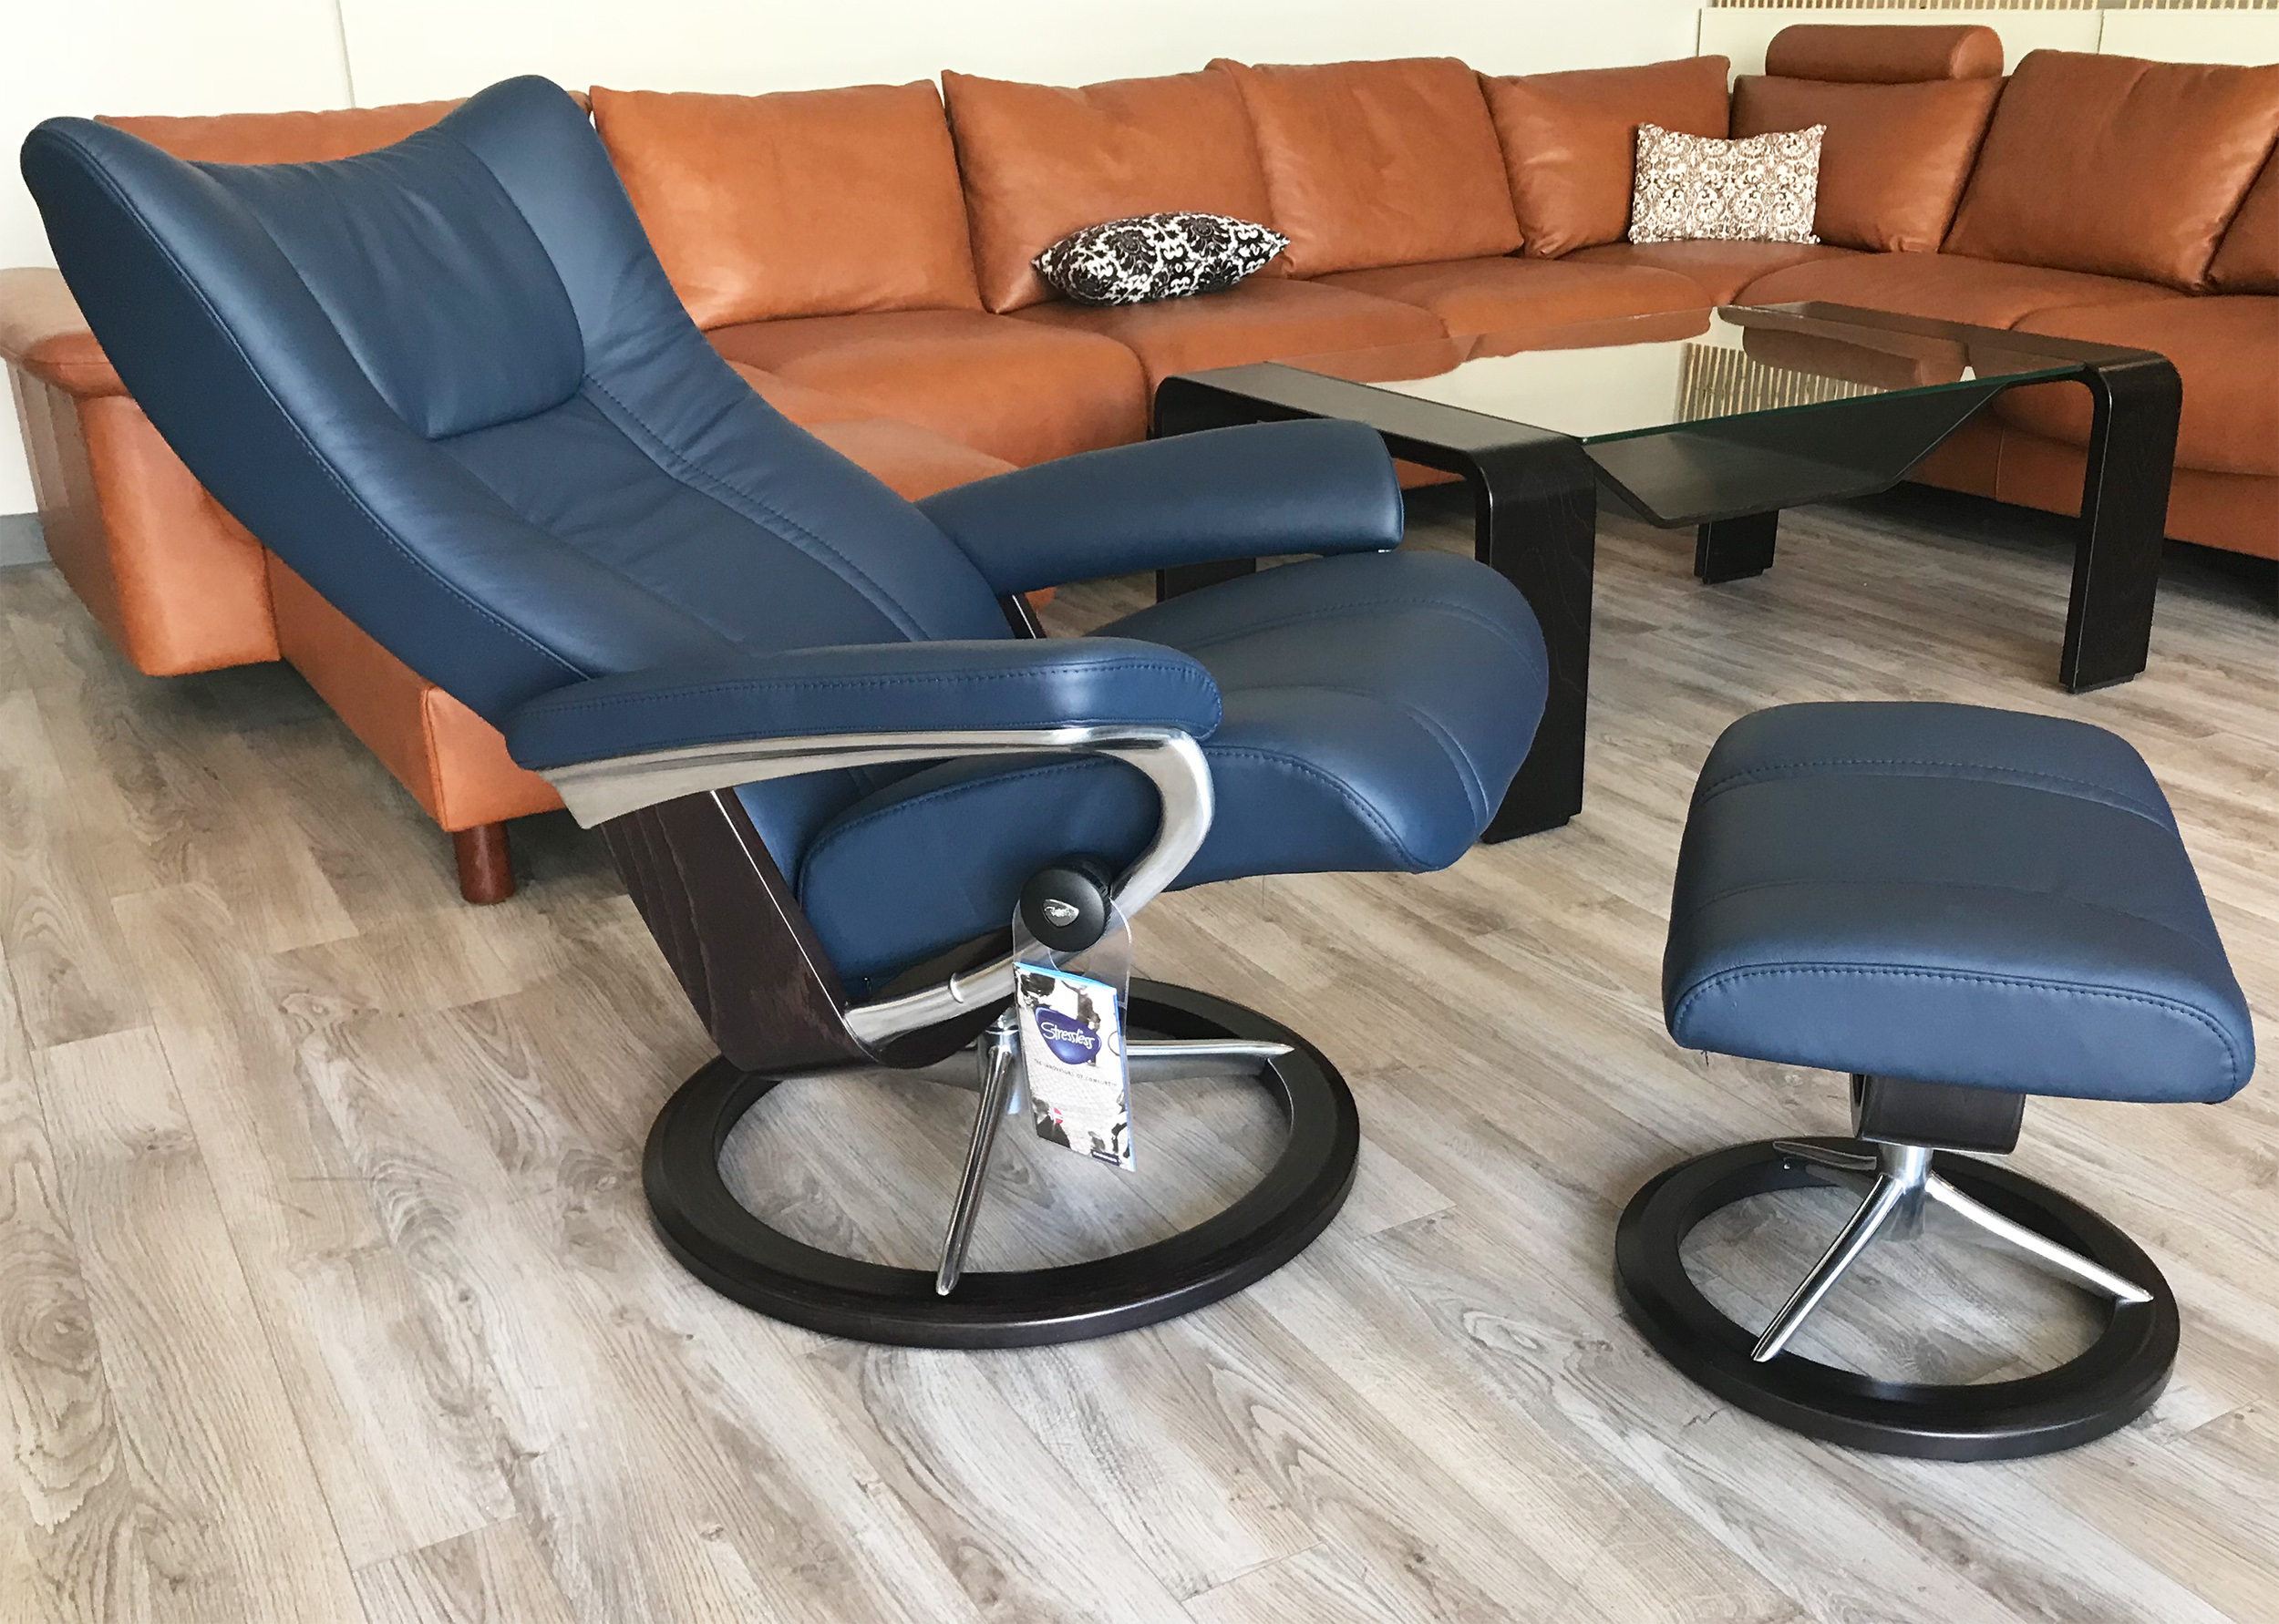 Stressless Wing Signature Base Paloma Oxford Blue Leather Recliner Chair And Ottoman By Ekornes Stressless Wing Signature Base Paloma Oxford Blue Leather Chairs Recliners